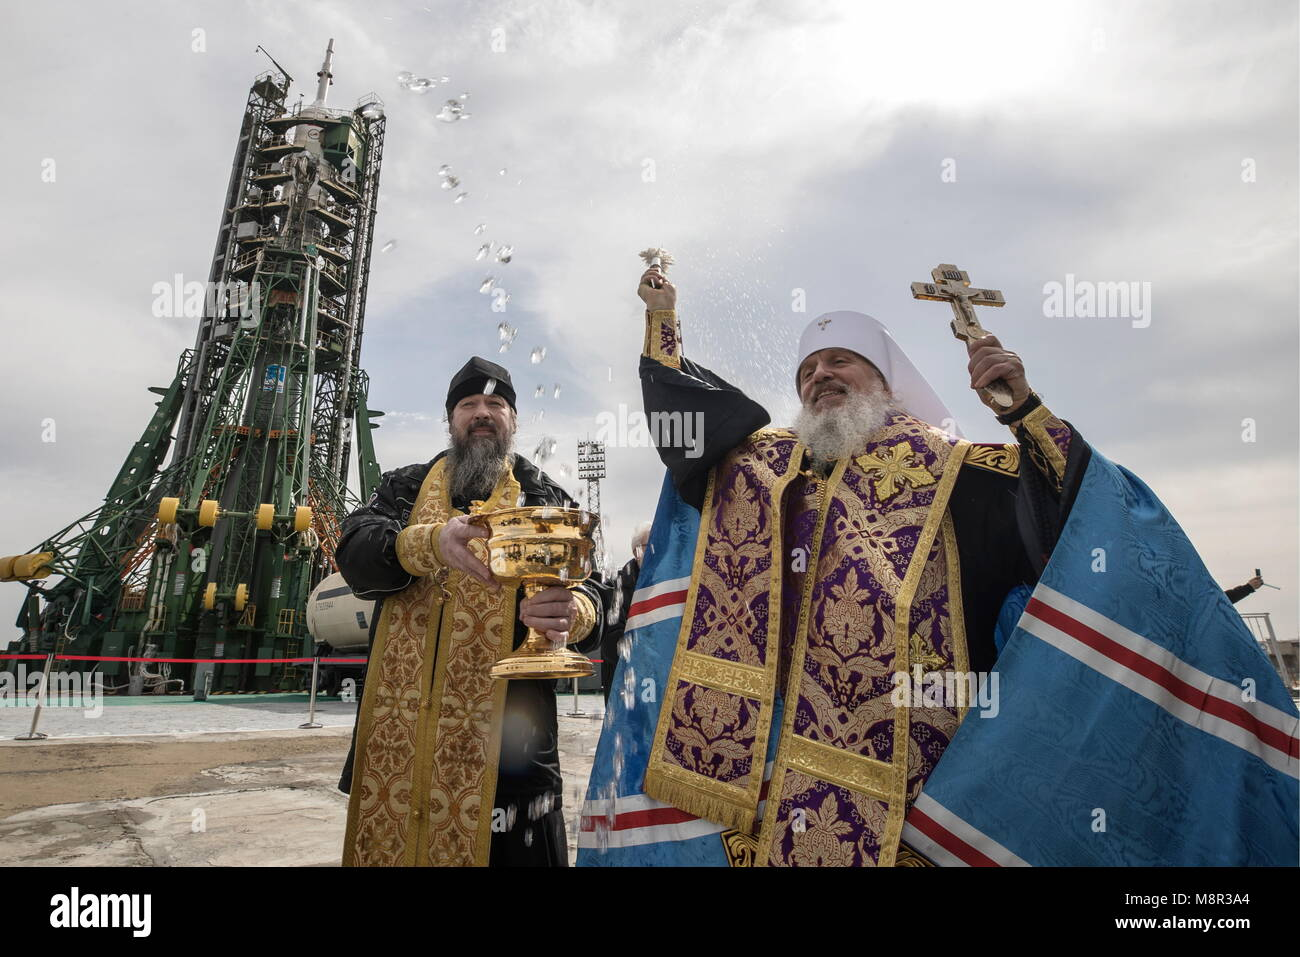 Kazakhstan. 20th Mar, 2018. KAZAKHSTAN - SEPTEMBER 11, 2017: An Orthodox priest conducts a blessing of a Soyuz-FG - Stock Image